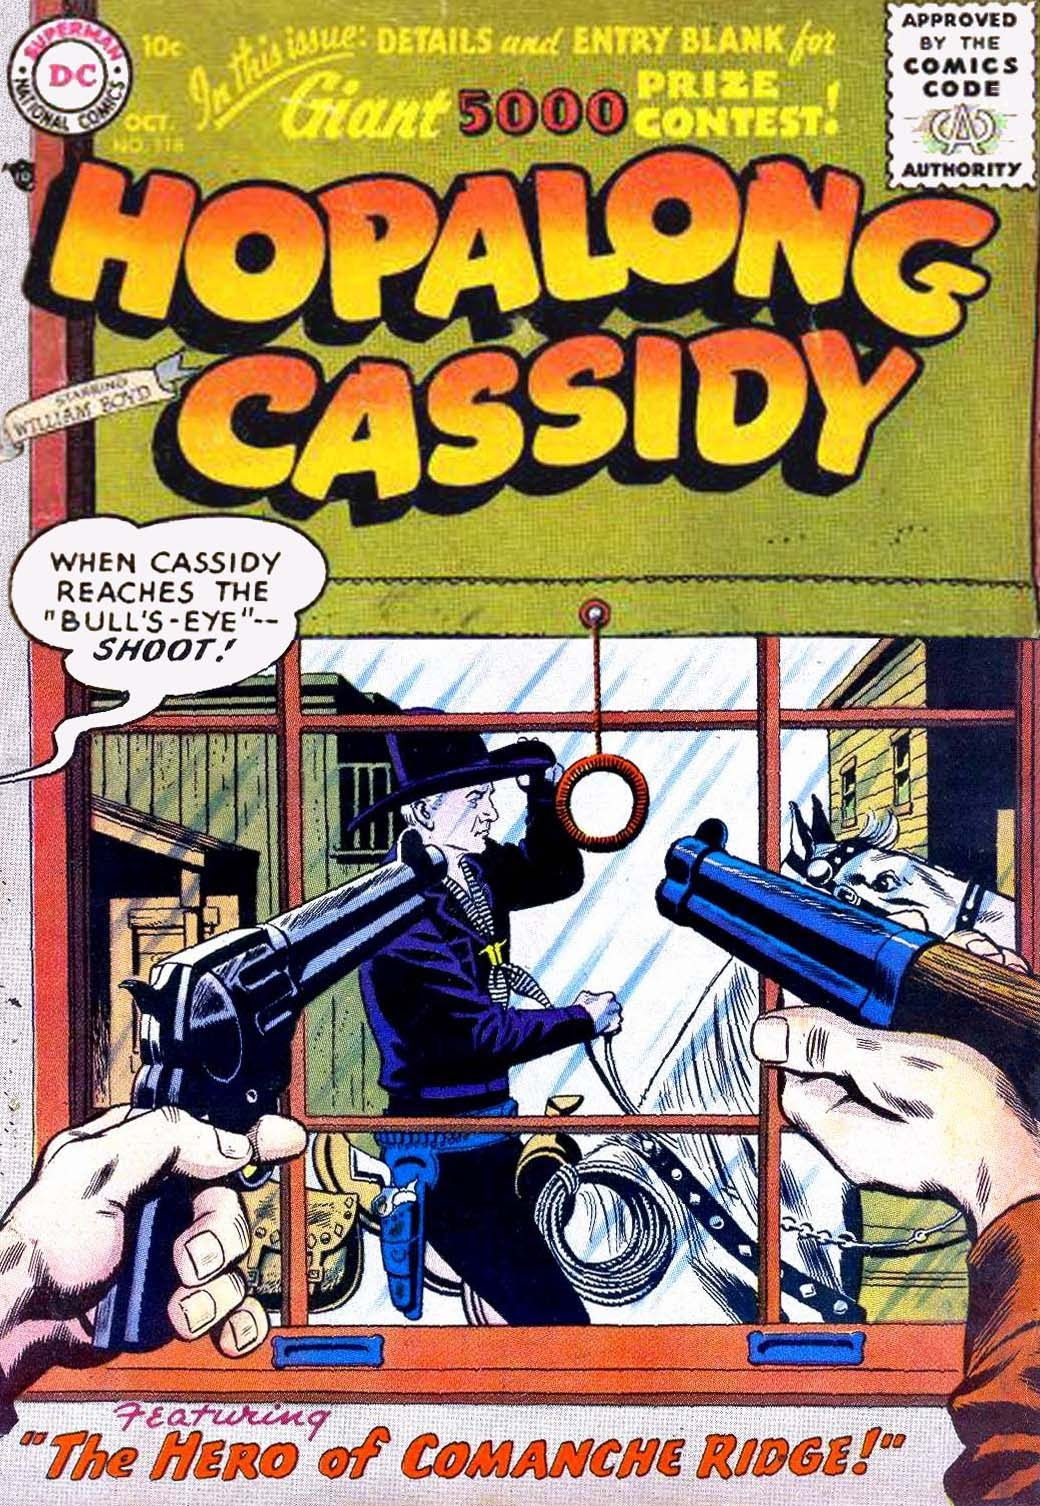 Hopalong Cassidy issue 118 - Page 1